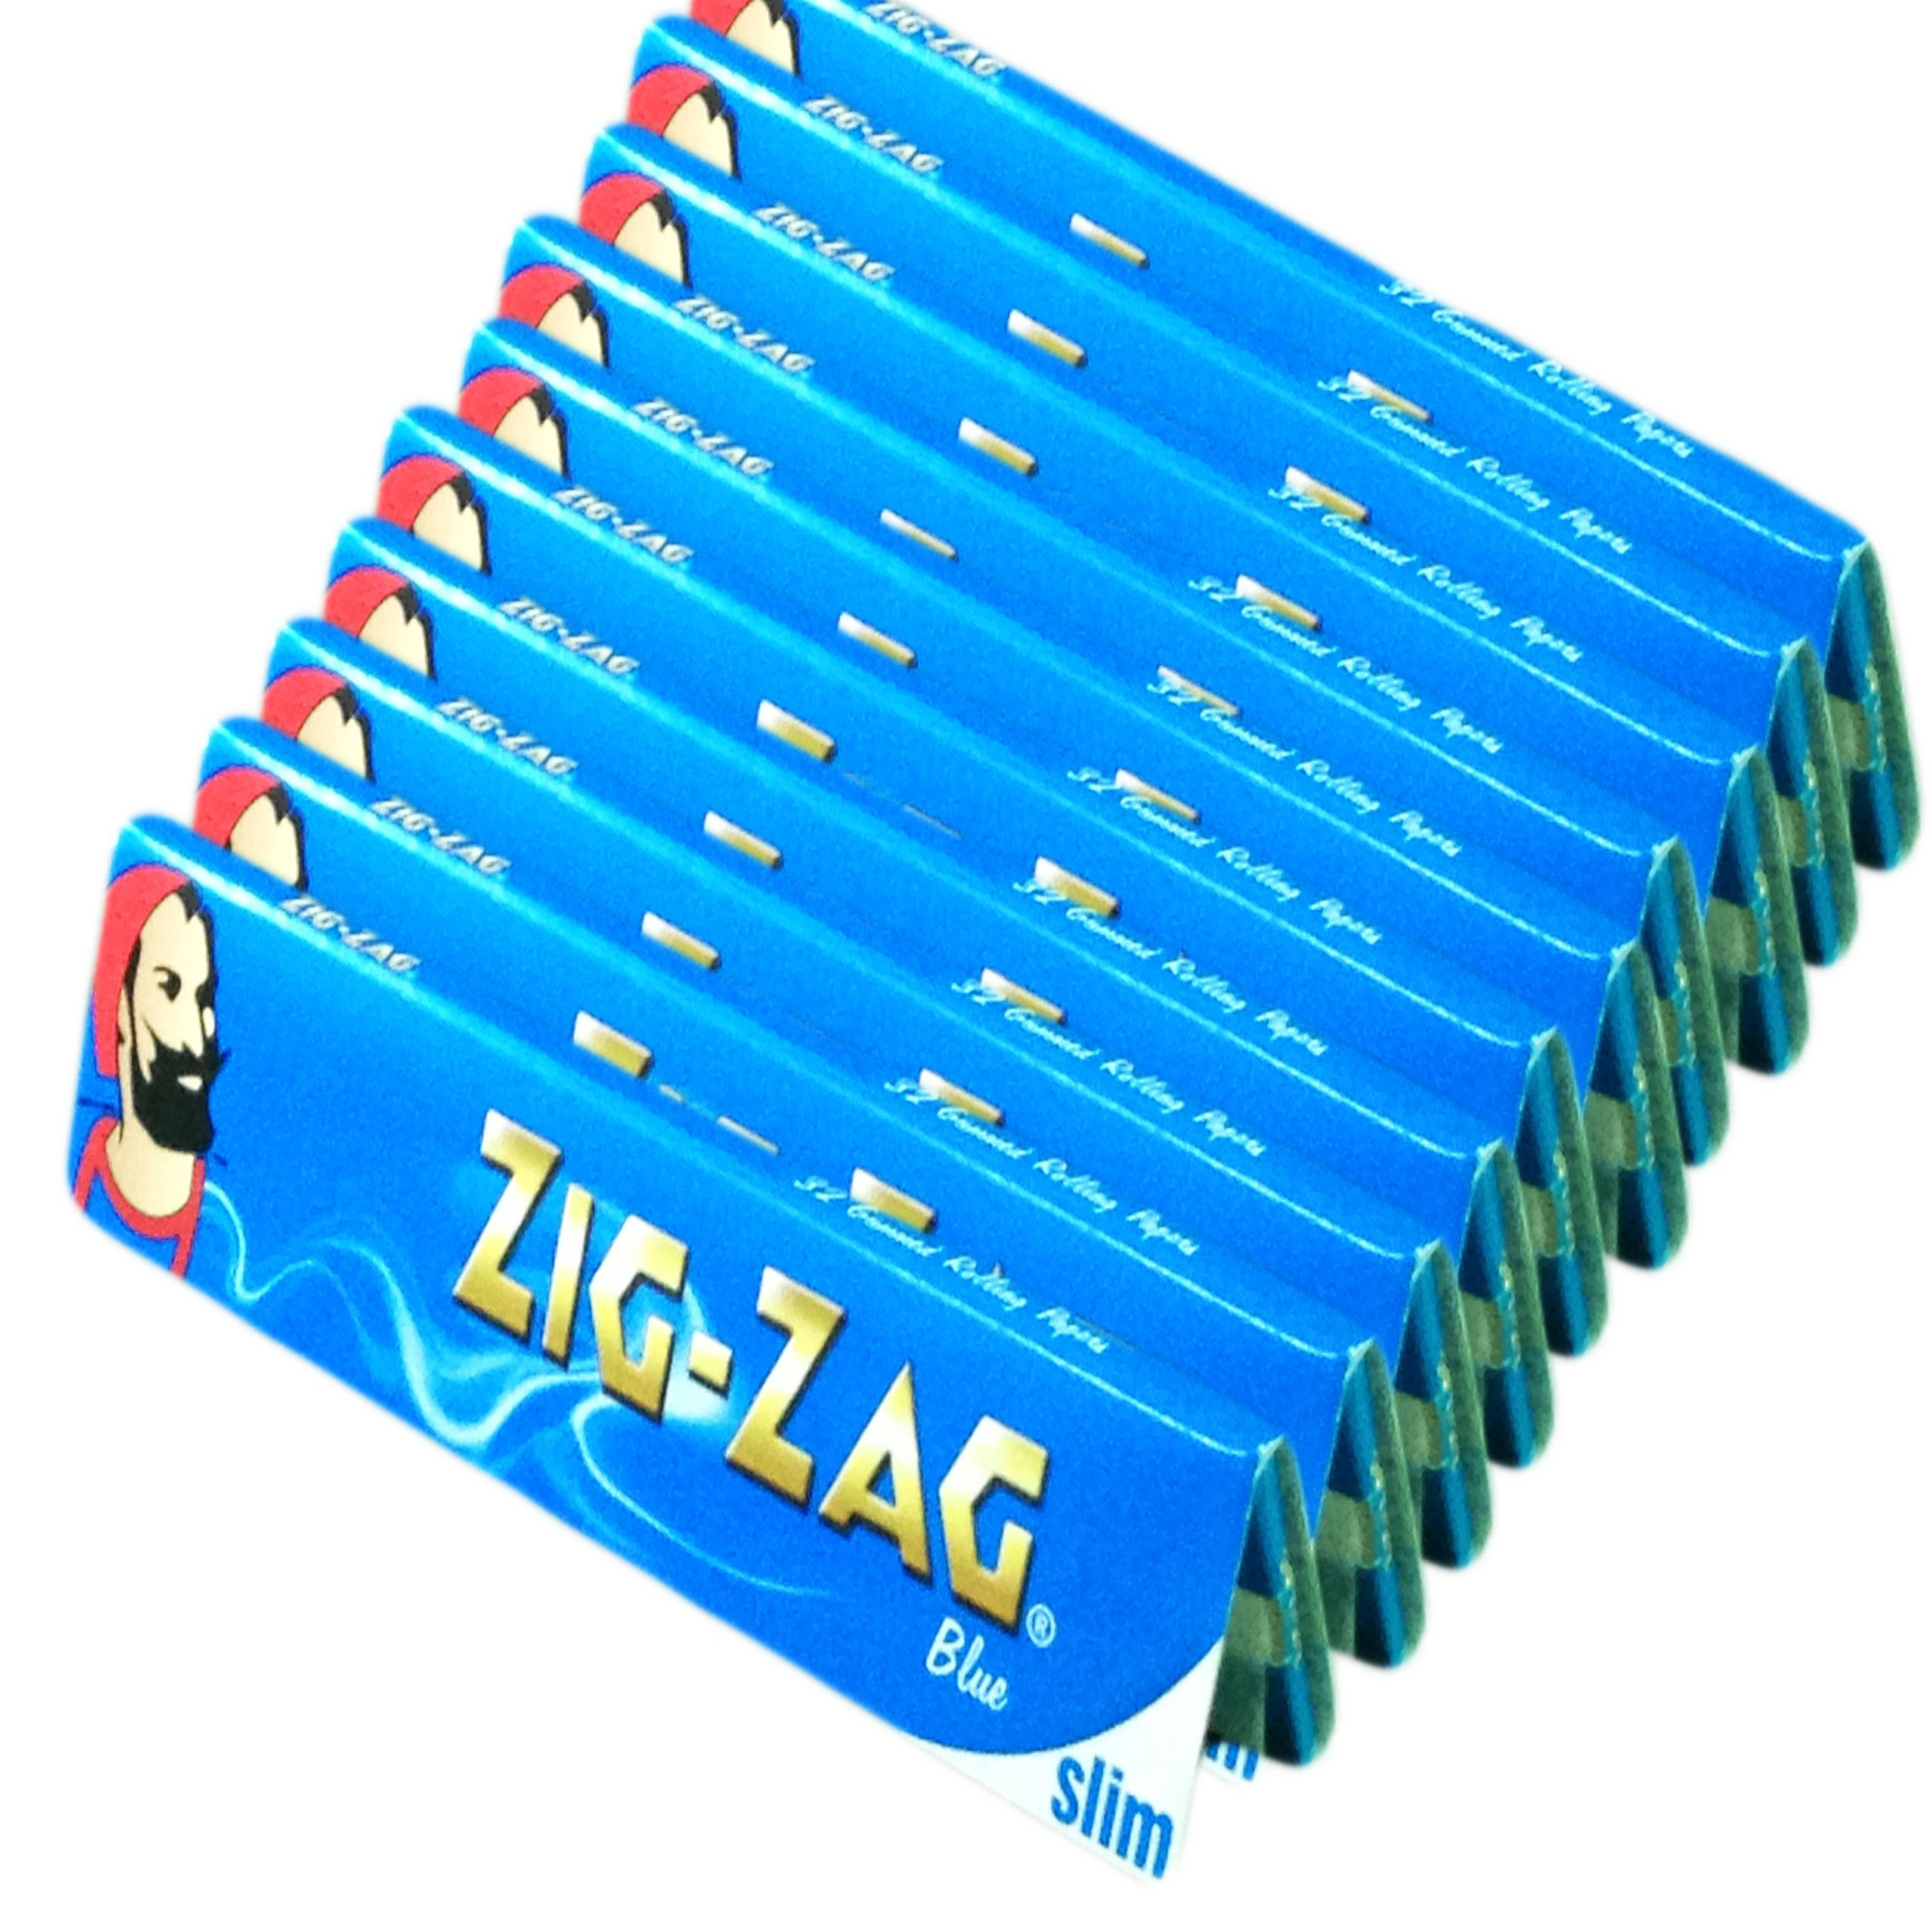 320 ZIG ZAG BLUE KING SIZE SLIM ROLLING PAPERS 10 BOOKS OF 32